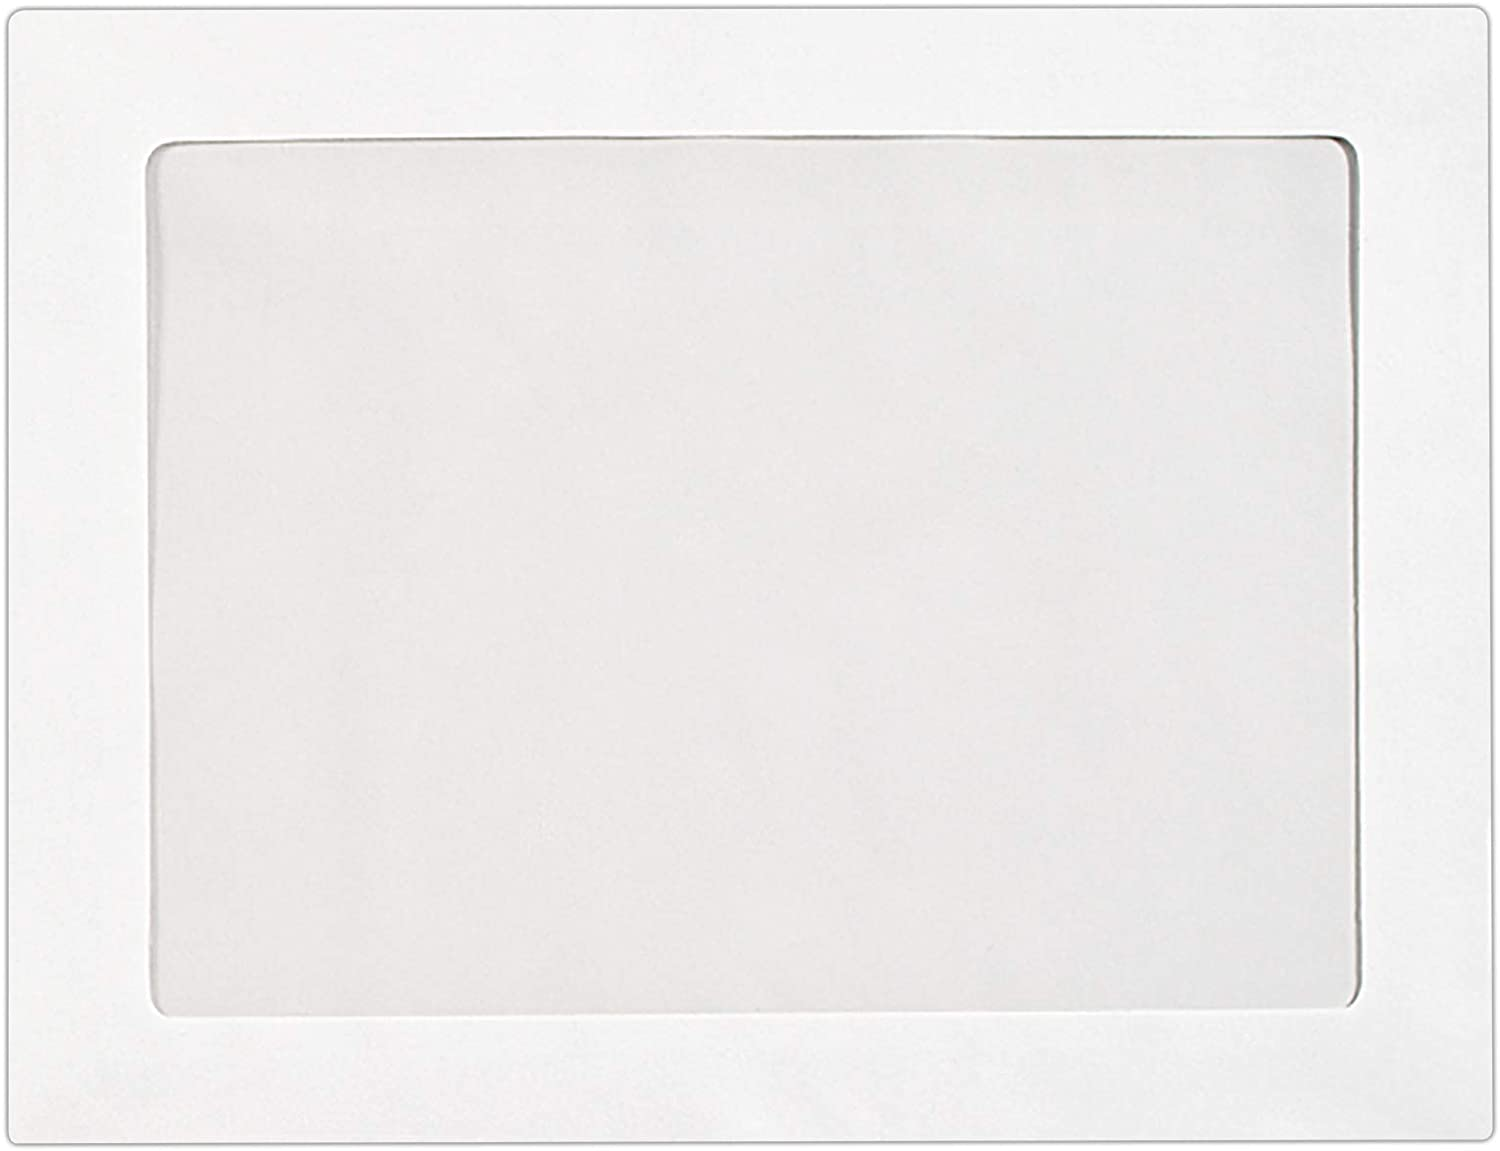 9 x 12 Full-Face Window Envelopes in 28 for lb. SALENEW Free shipping on posting reviews very popular White Mai Bright